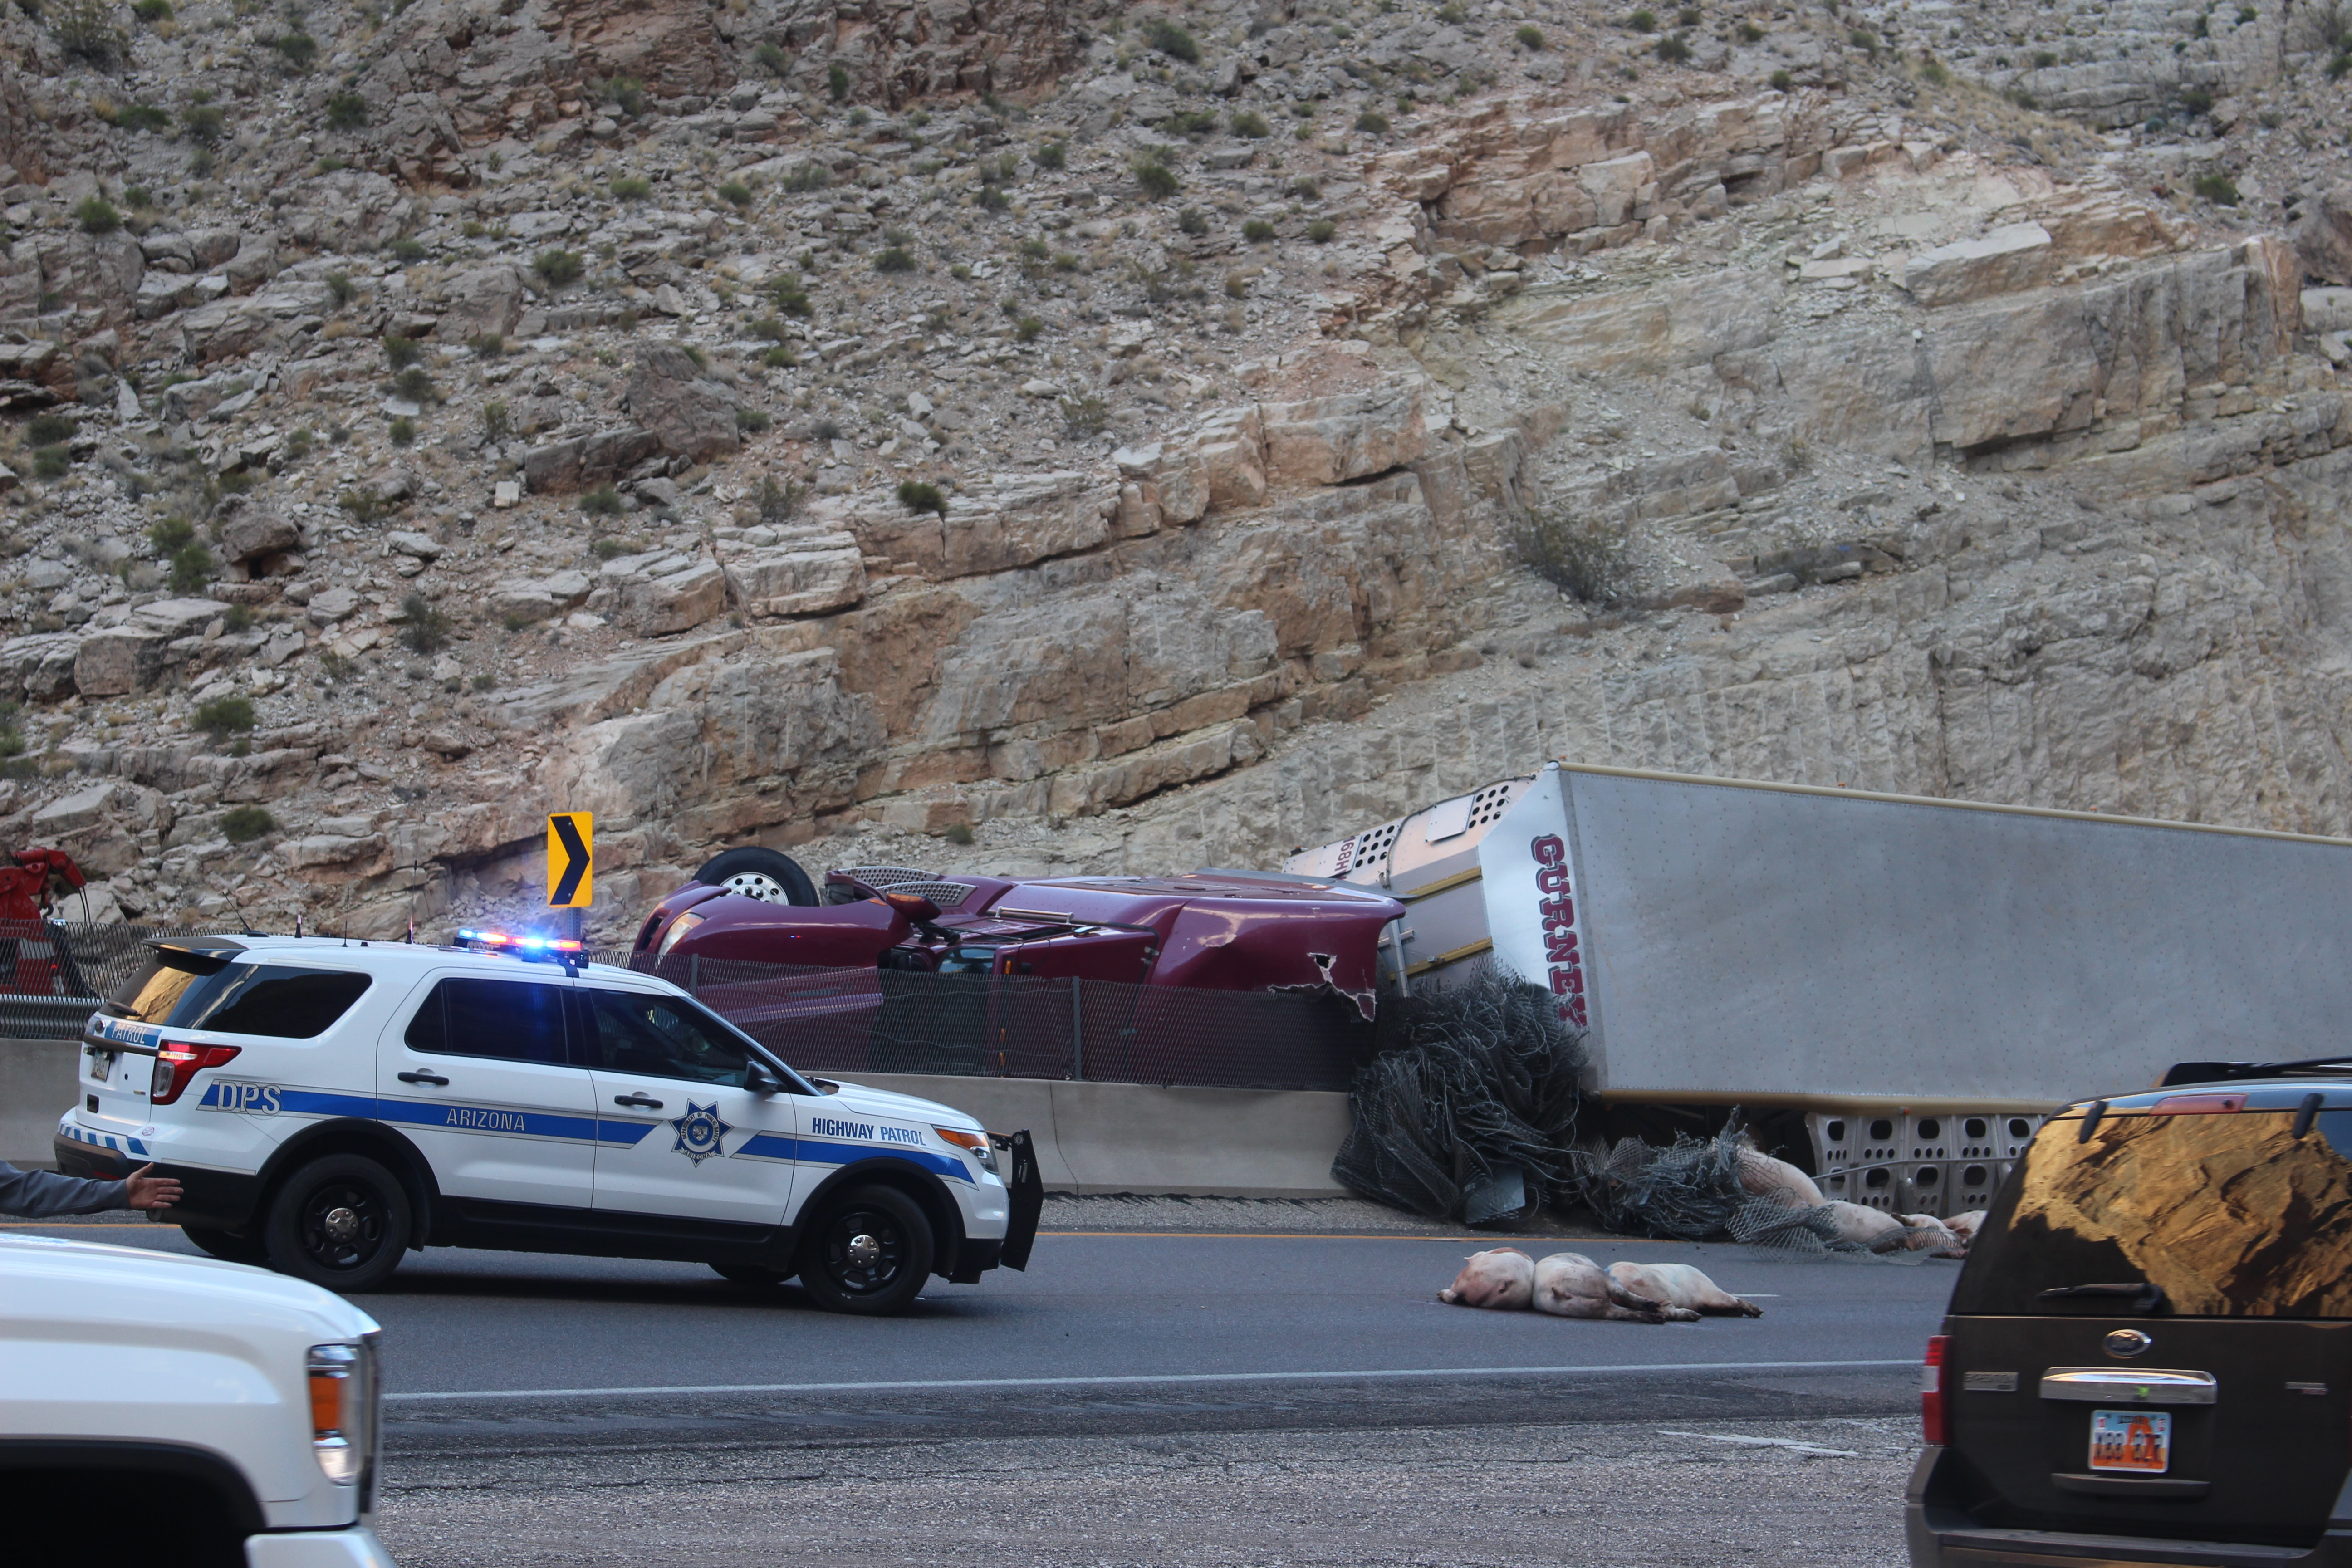 Emergency crews and volunteer ranchers clean up after a semi hauling pigs overturns in Interstate 15, Mojave County, Arizona, Oct. 17, 2016 | Photo by Joseph Witham, St. George News